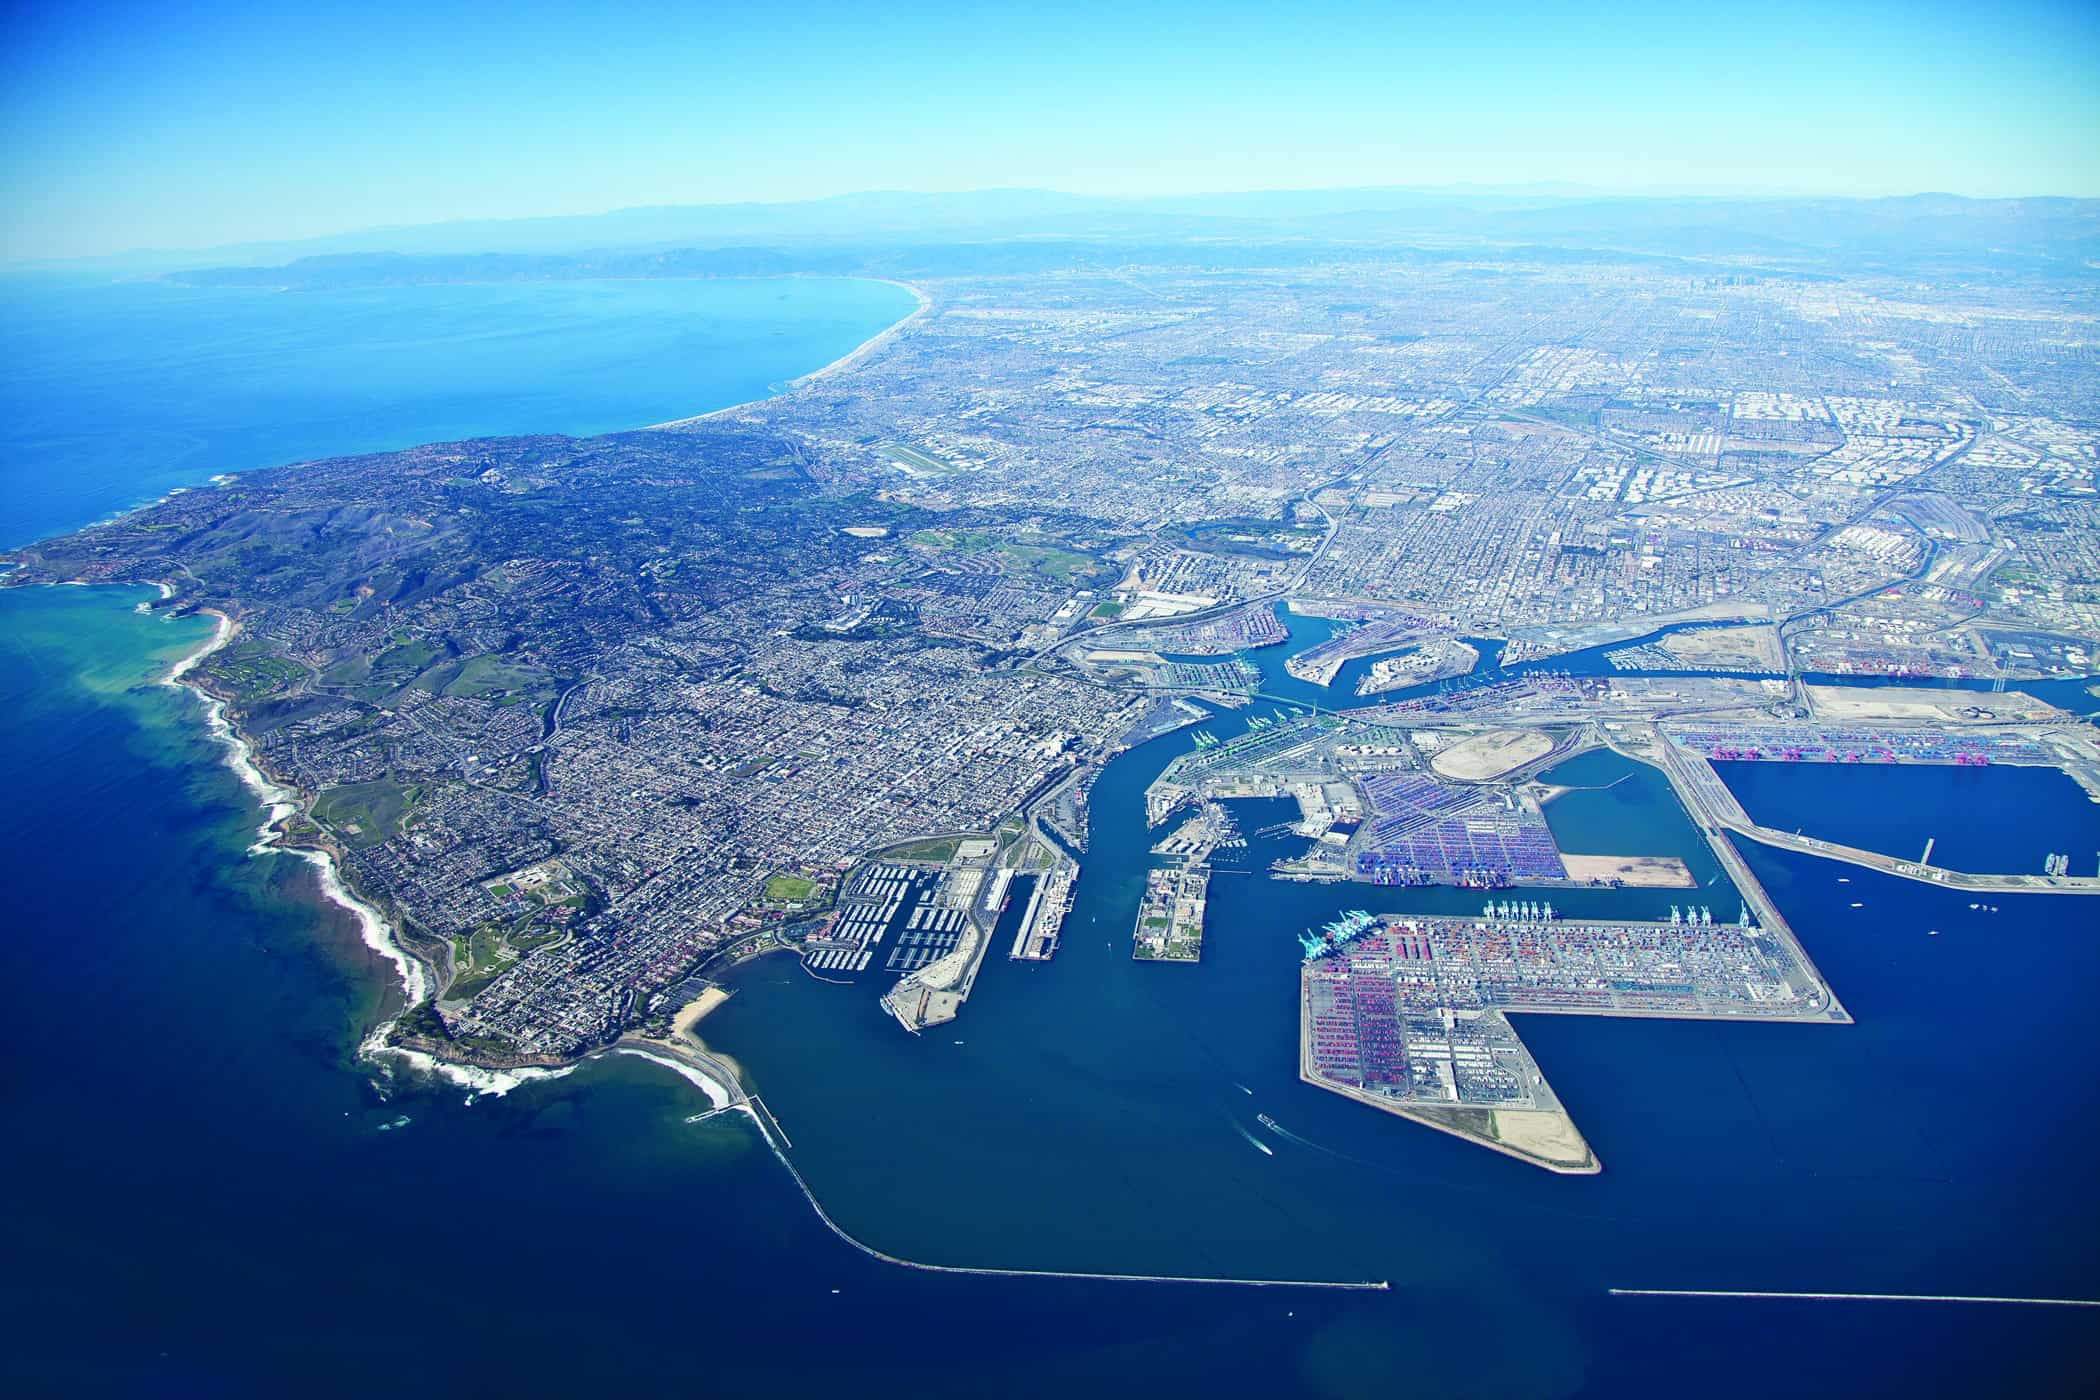 New port master plan for Los Angeles